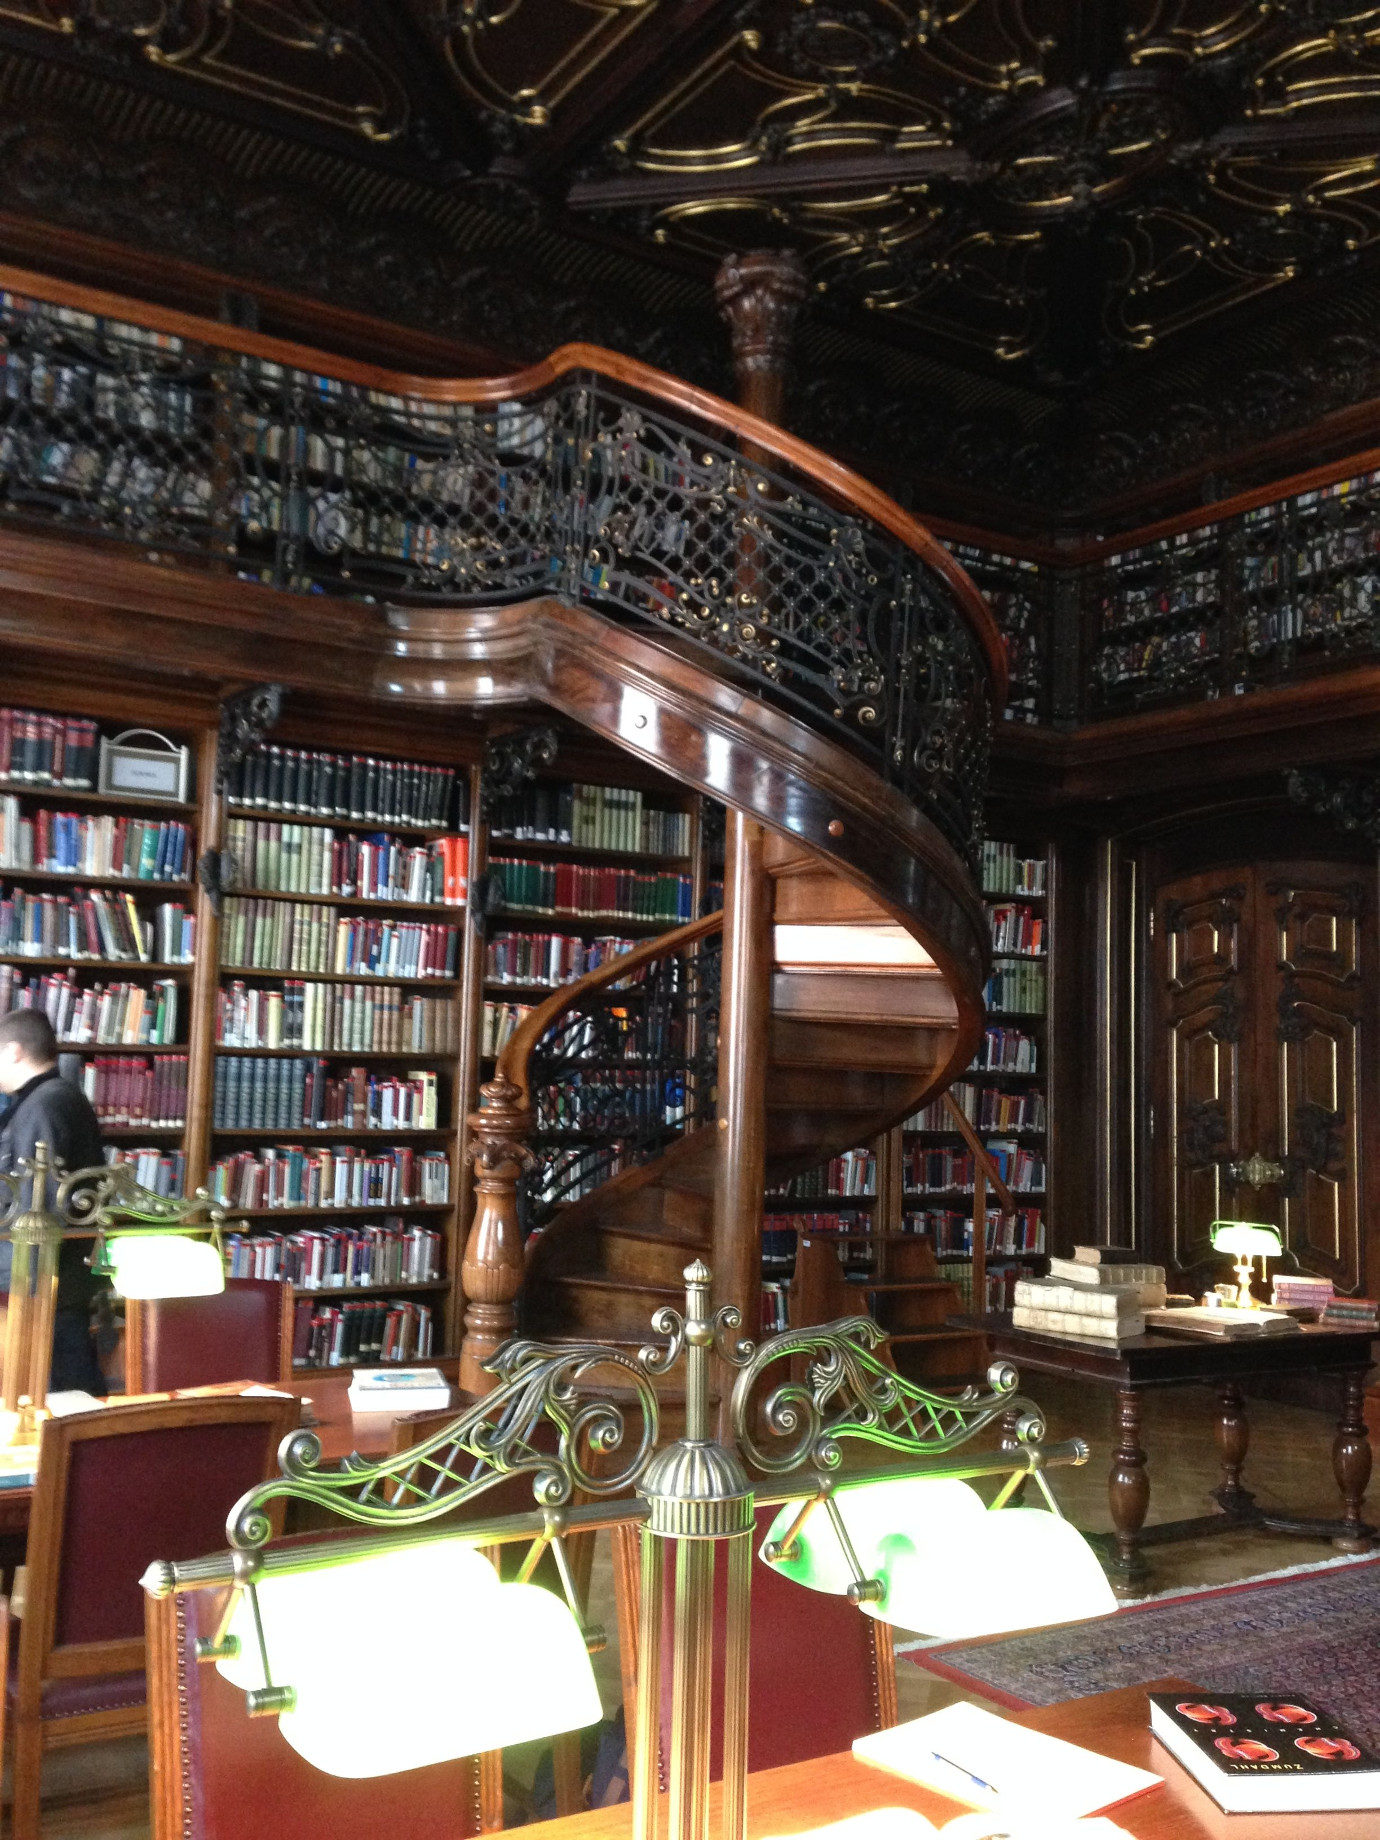 The Sword & Cross library was filmed in a working and extravagantly beautiful public library. The only thing we had to change was to remove an antique chandelier, for which the world's foremost chandelier mover had to be called in. Seriously.